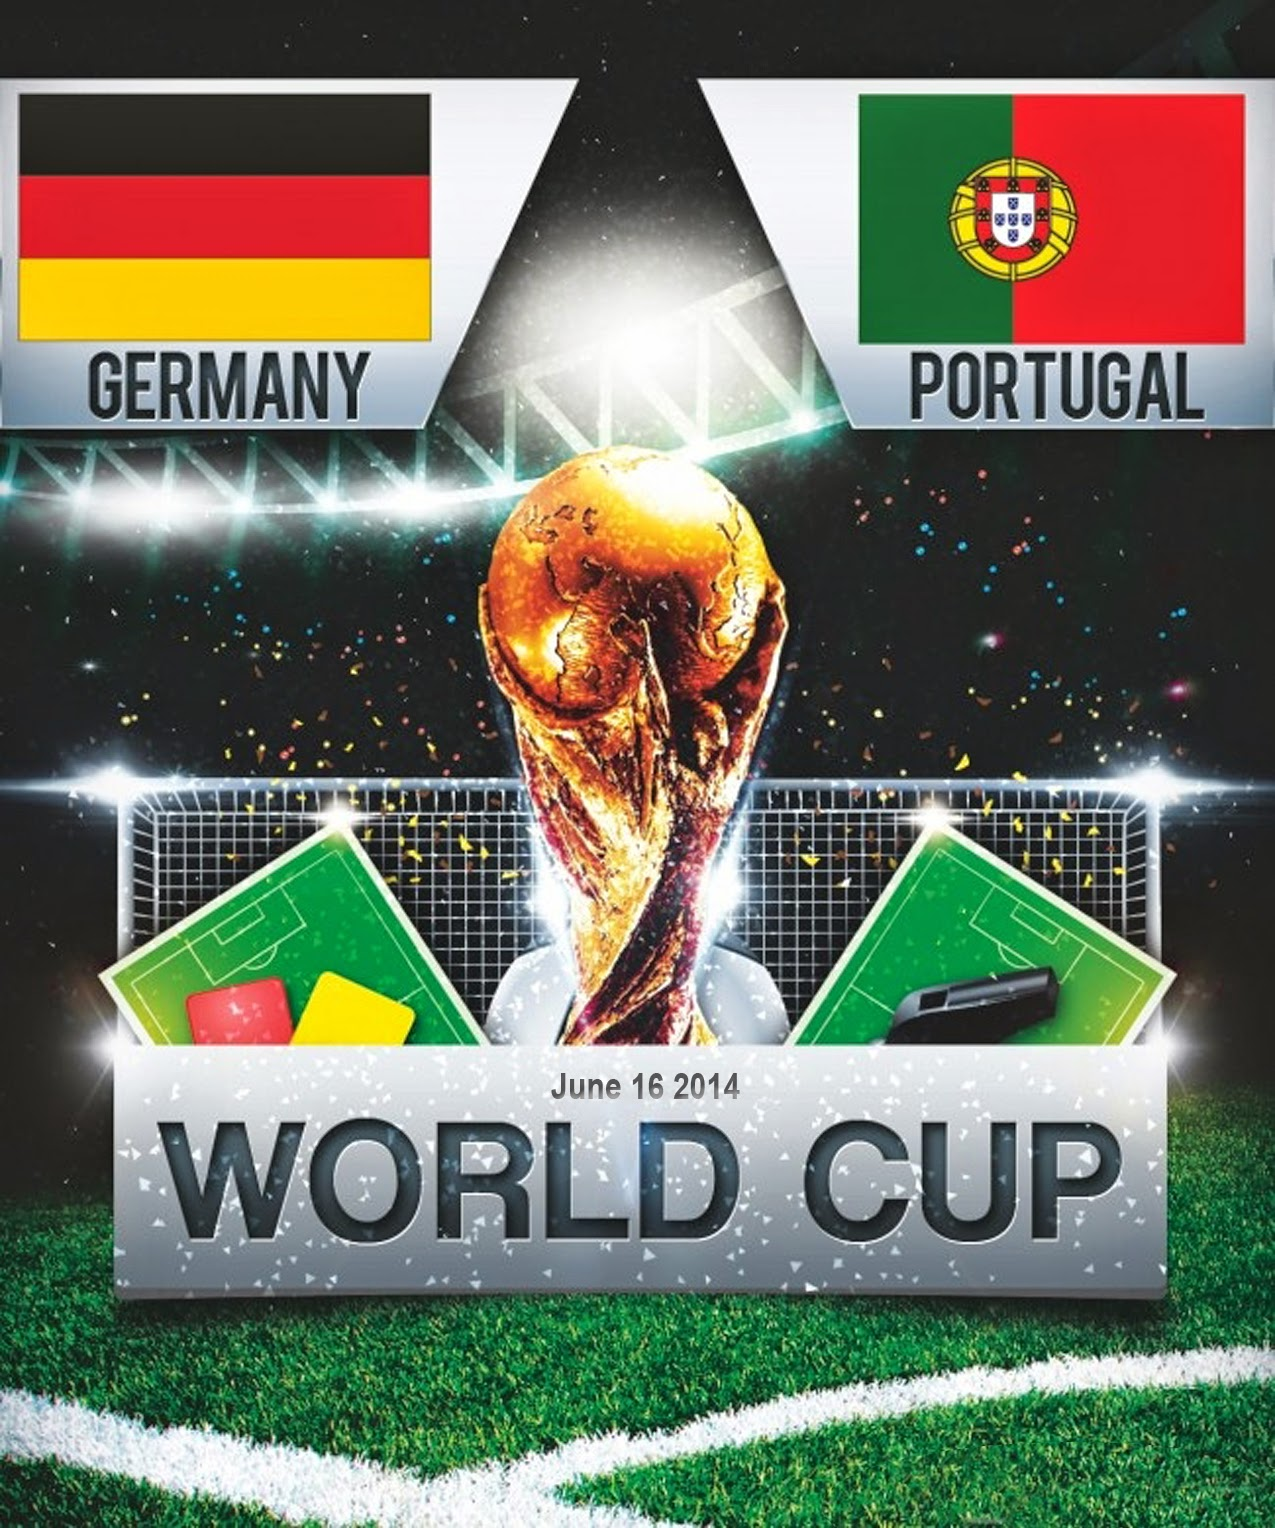 FIFa World Cup 2014 - Germany Vs Portugal